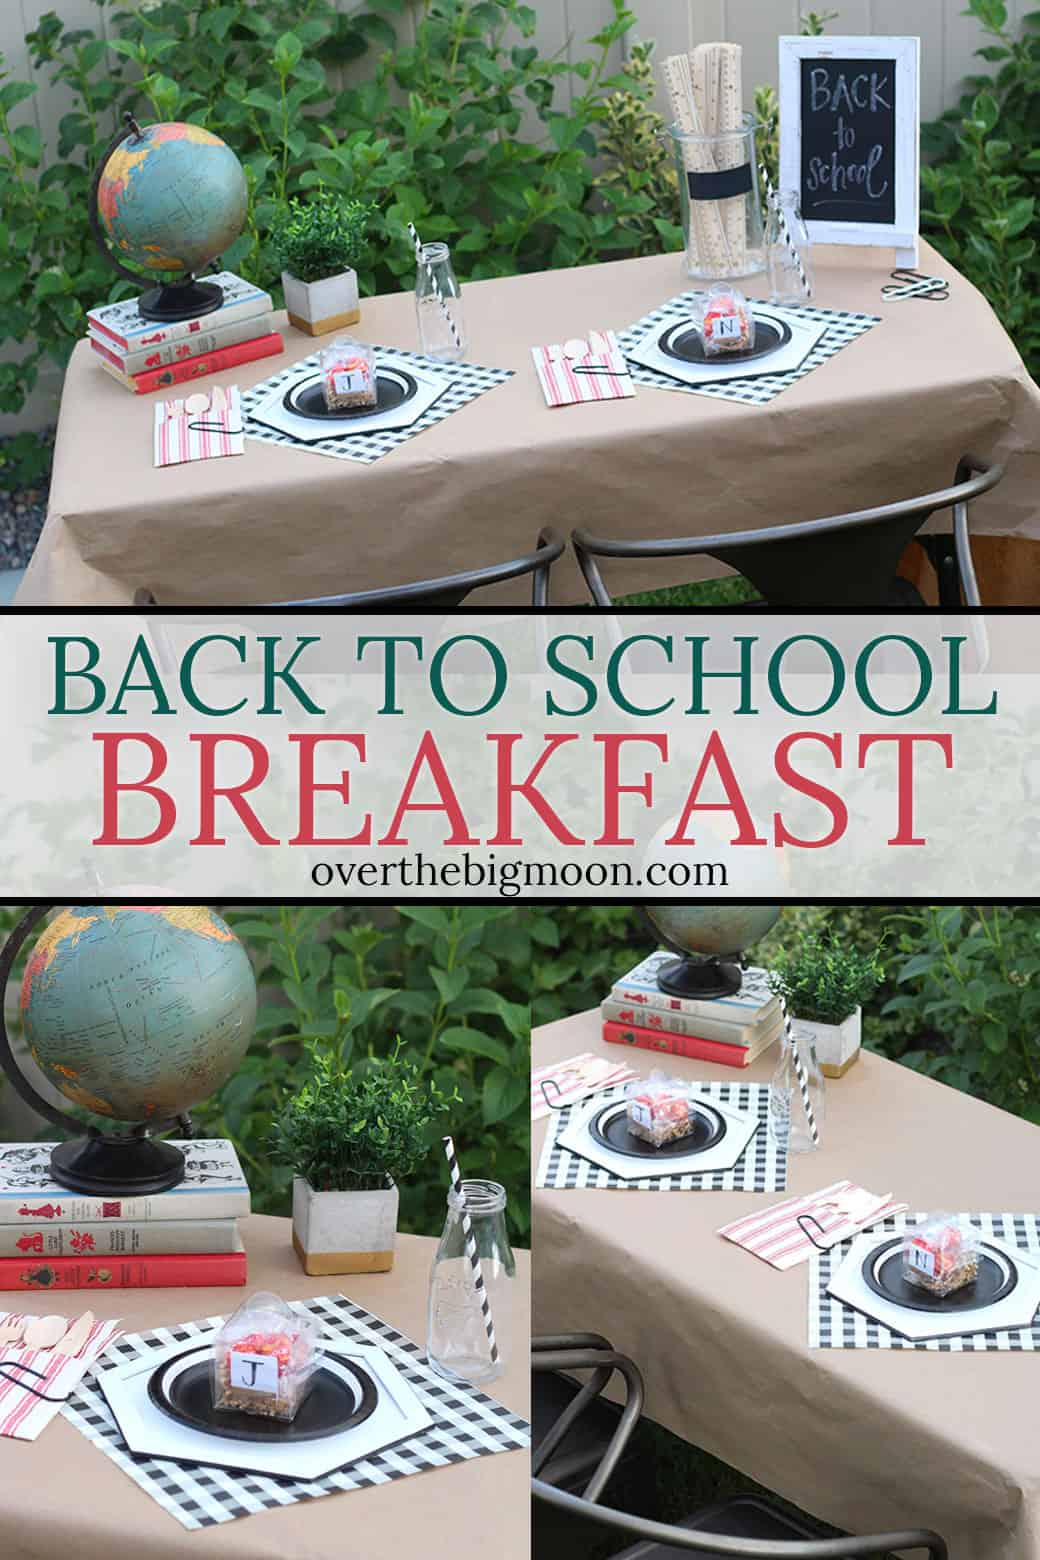 Back to School Breakfast for the First Day of School! Fun decoration ideas, plus some fun DIY's you can make on your Cricut Maker! From overthebigmoon.com!